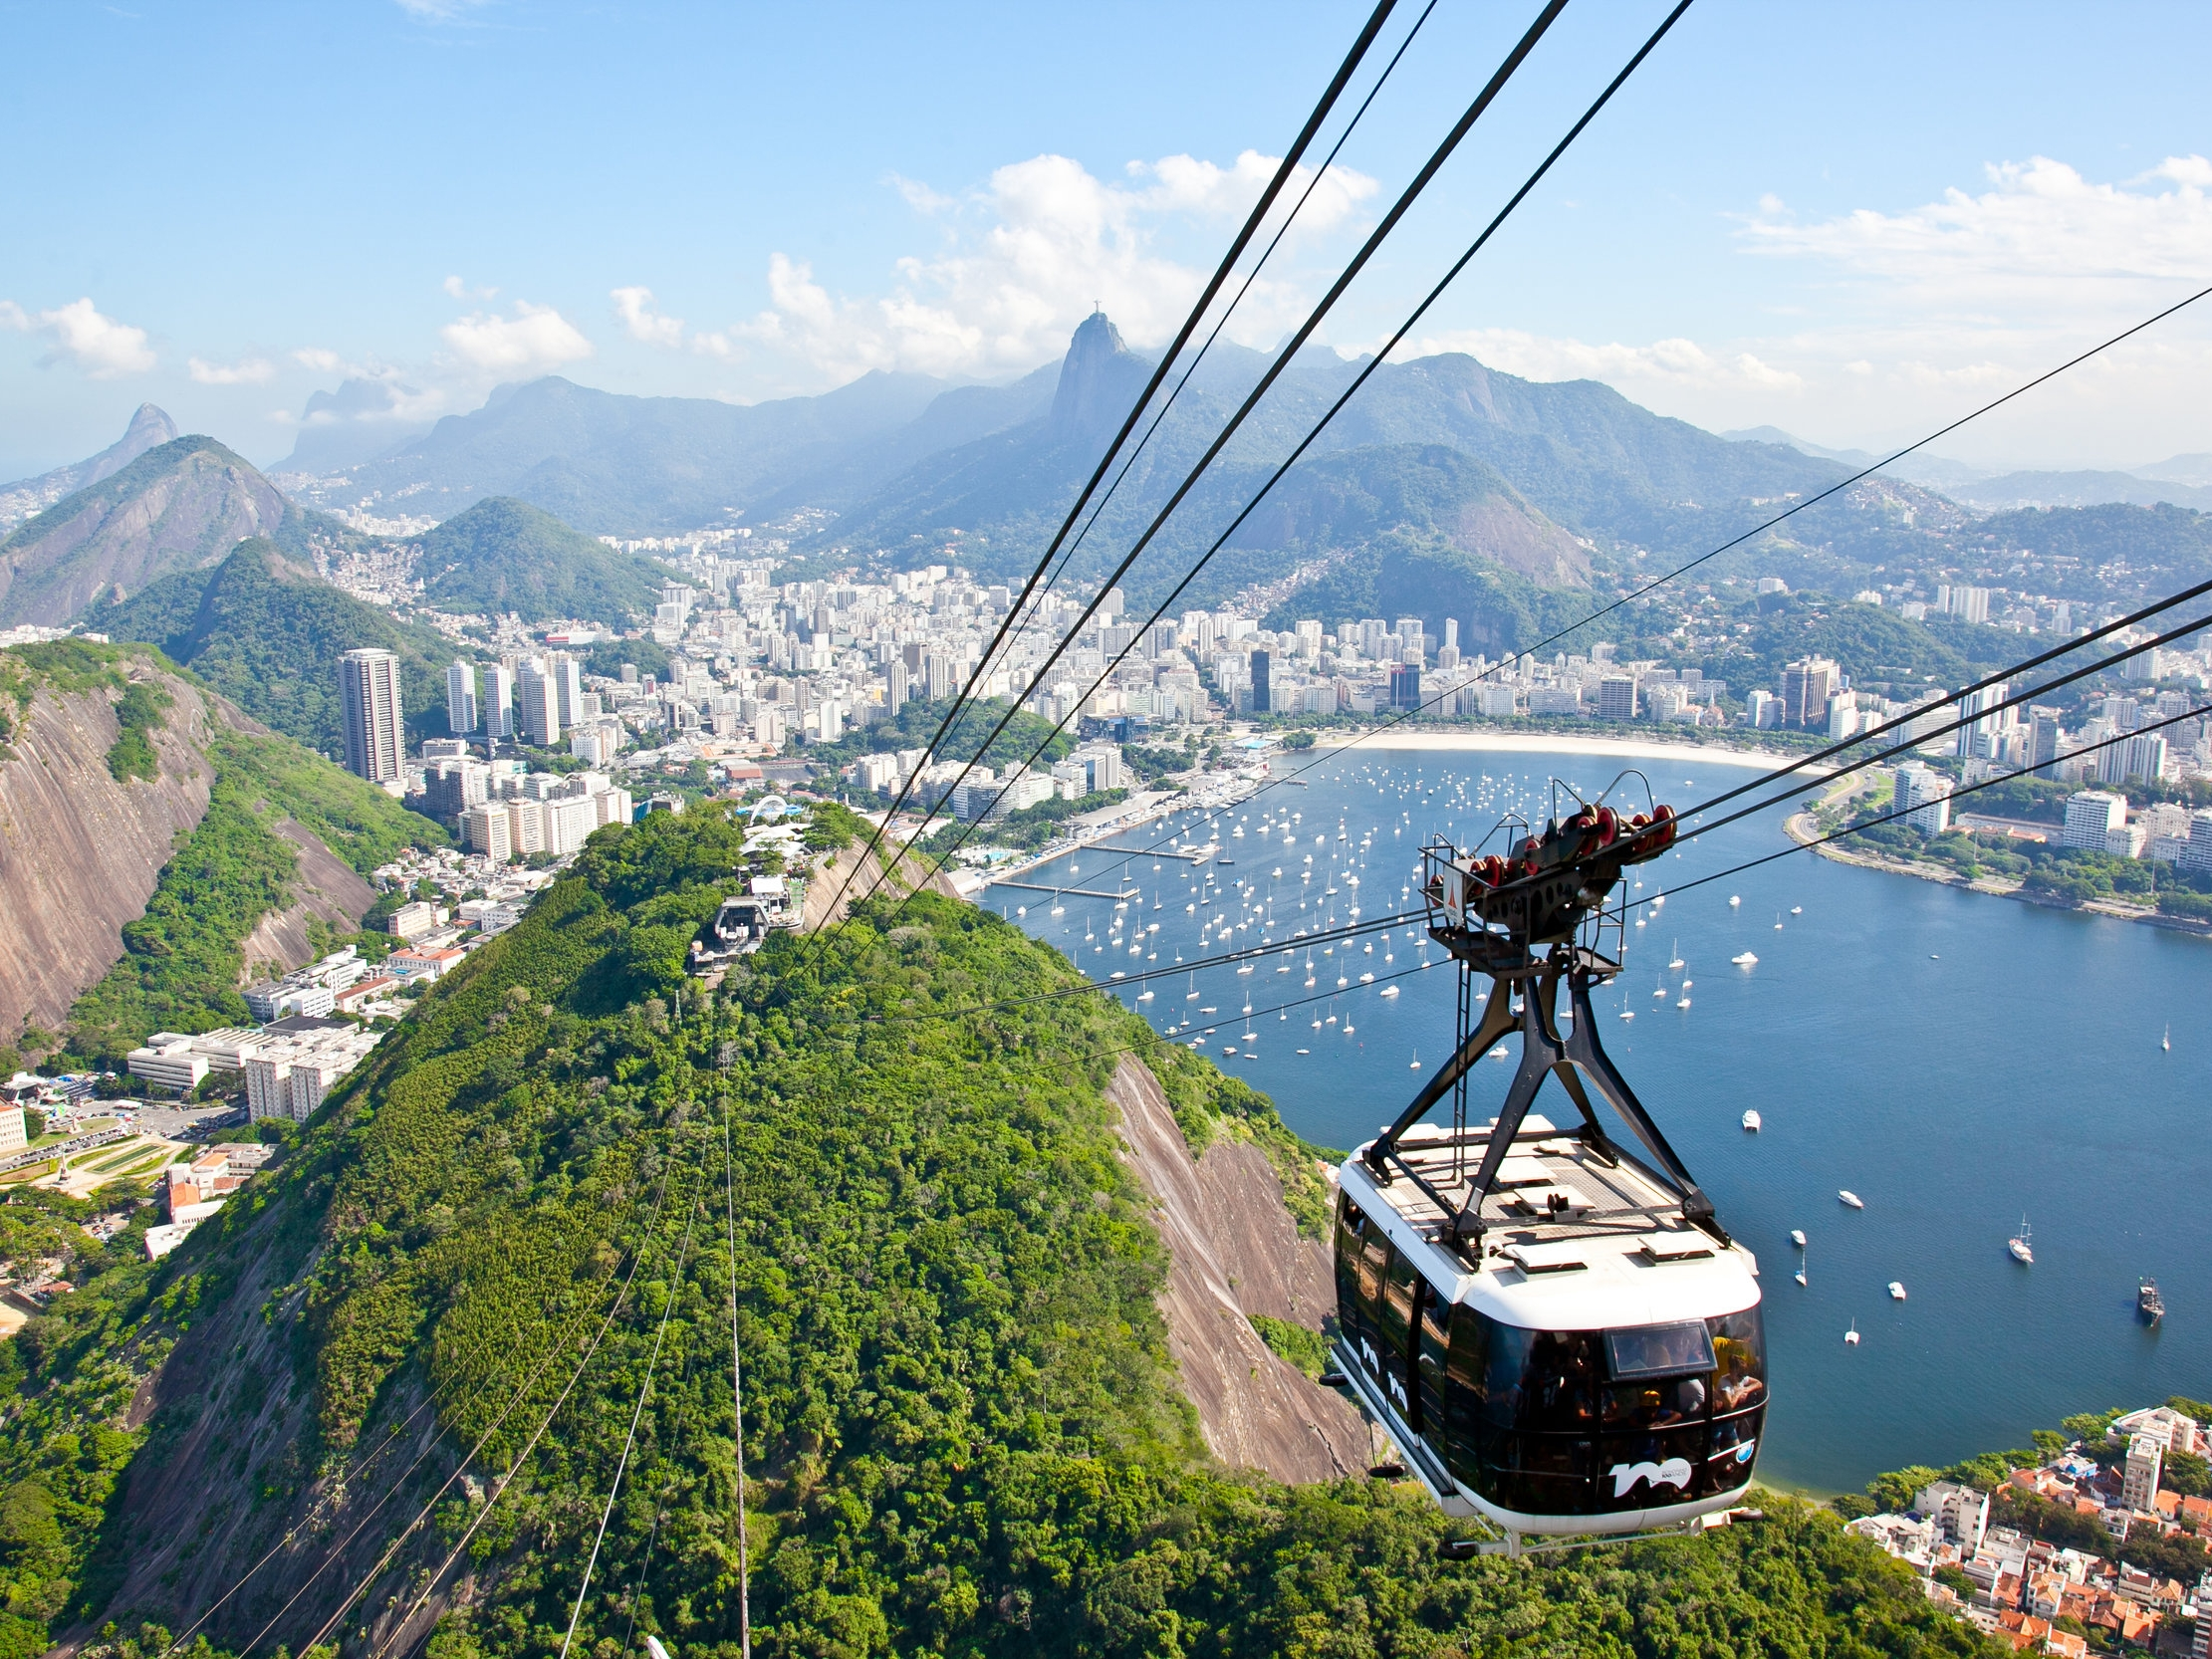 Rio de Janerio - Most famous for its iconic landscapes and breathtaking views, travelers are no less enthralled by Rio's popular beach culture, passionate futbol frenzy and vibrant nightlife - not to mention the surrounding parks, endless outdoor activities, and delicious food.